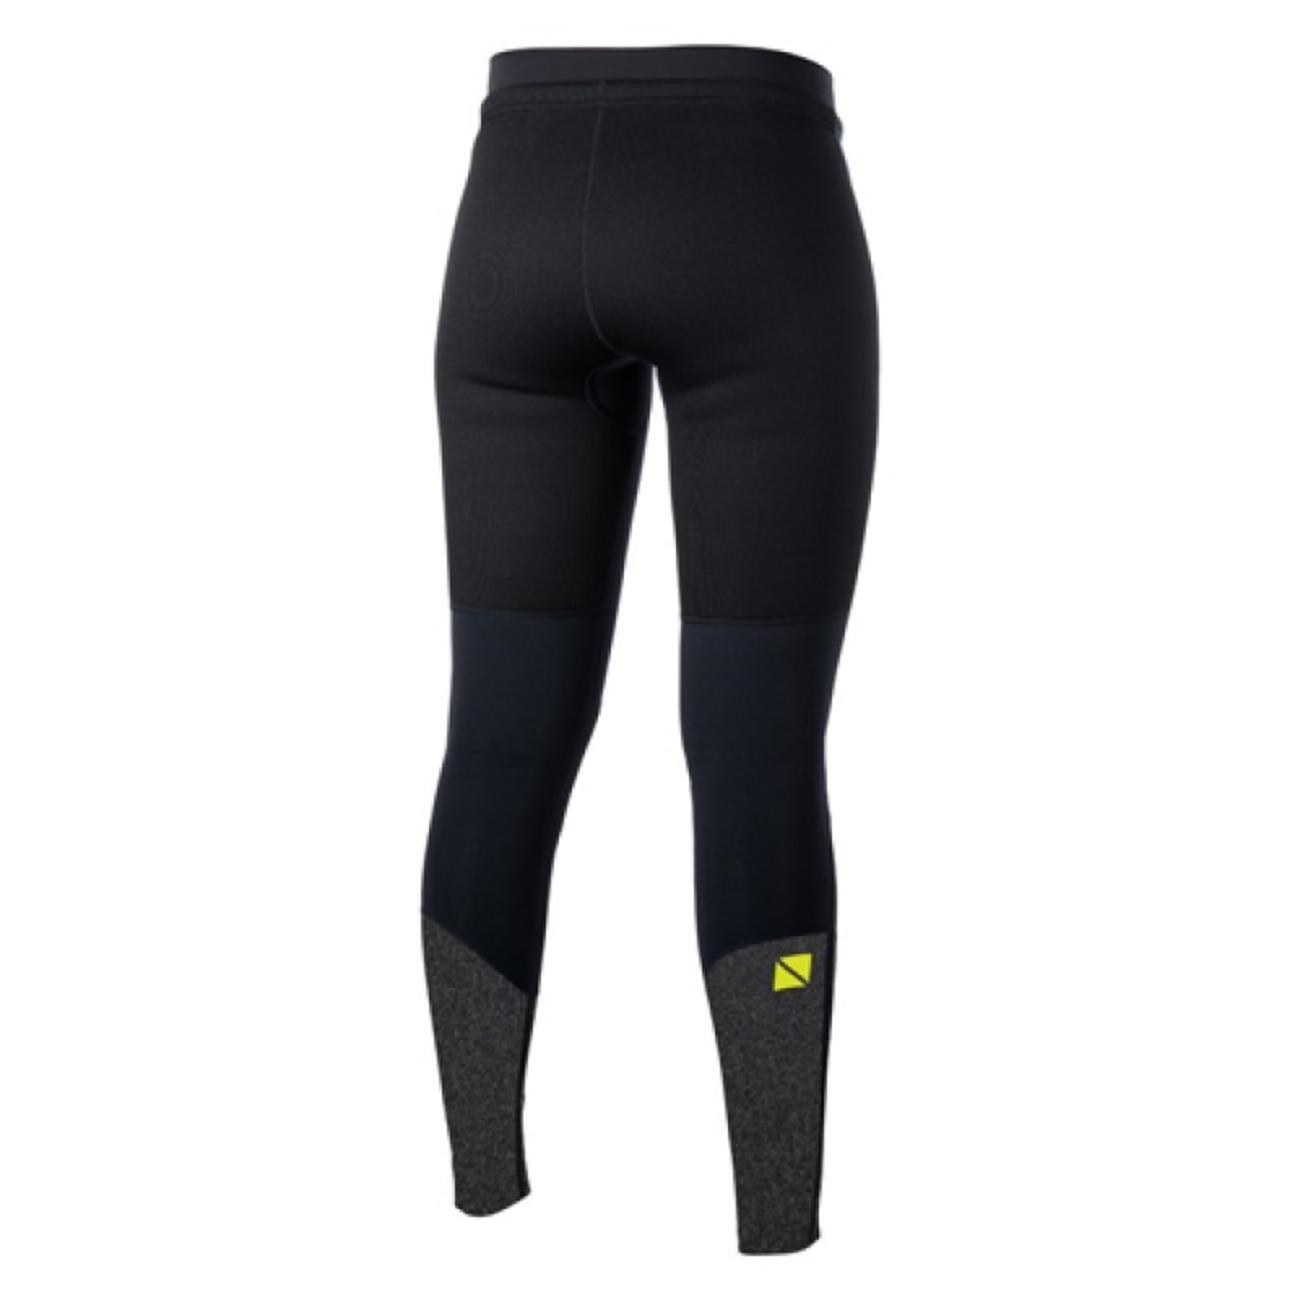 Ultimate Pants Neoprene 1.5mm Flatlock Women